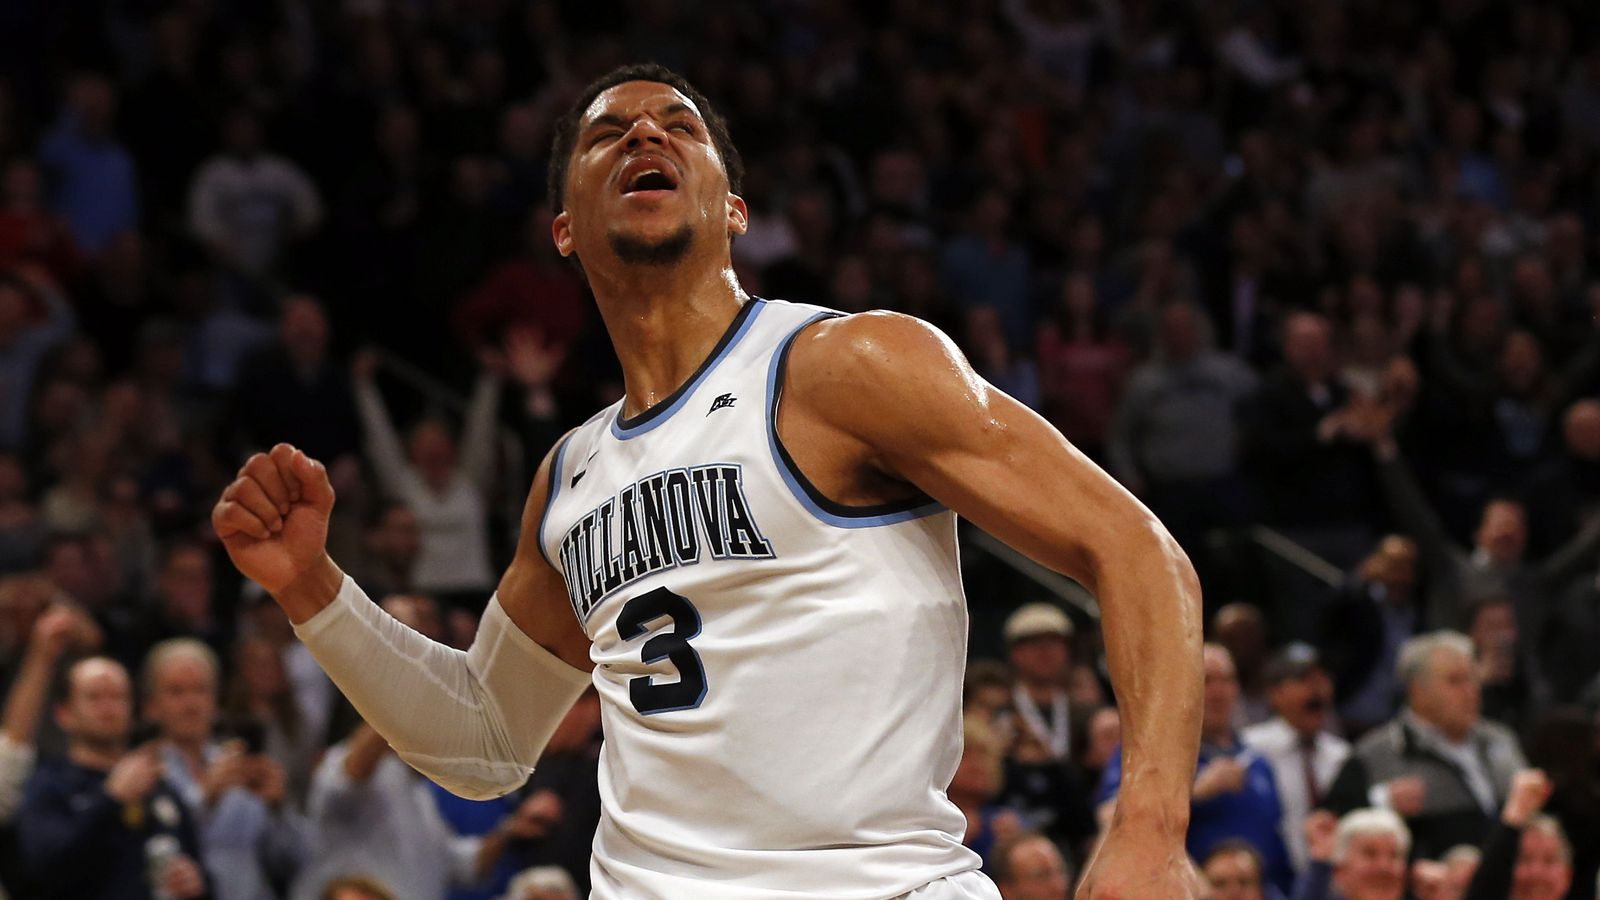 NCAA Tournament 2017: Schedule for Thursday's mid-afternoon March Madness games